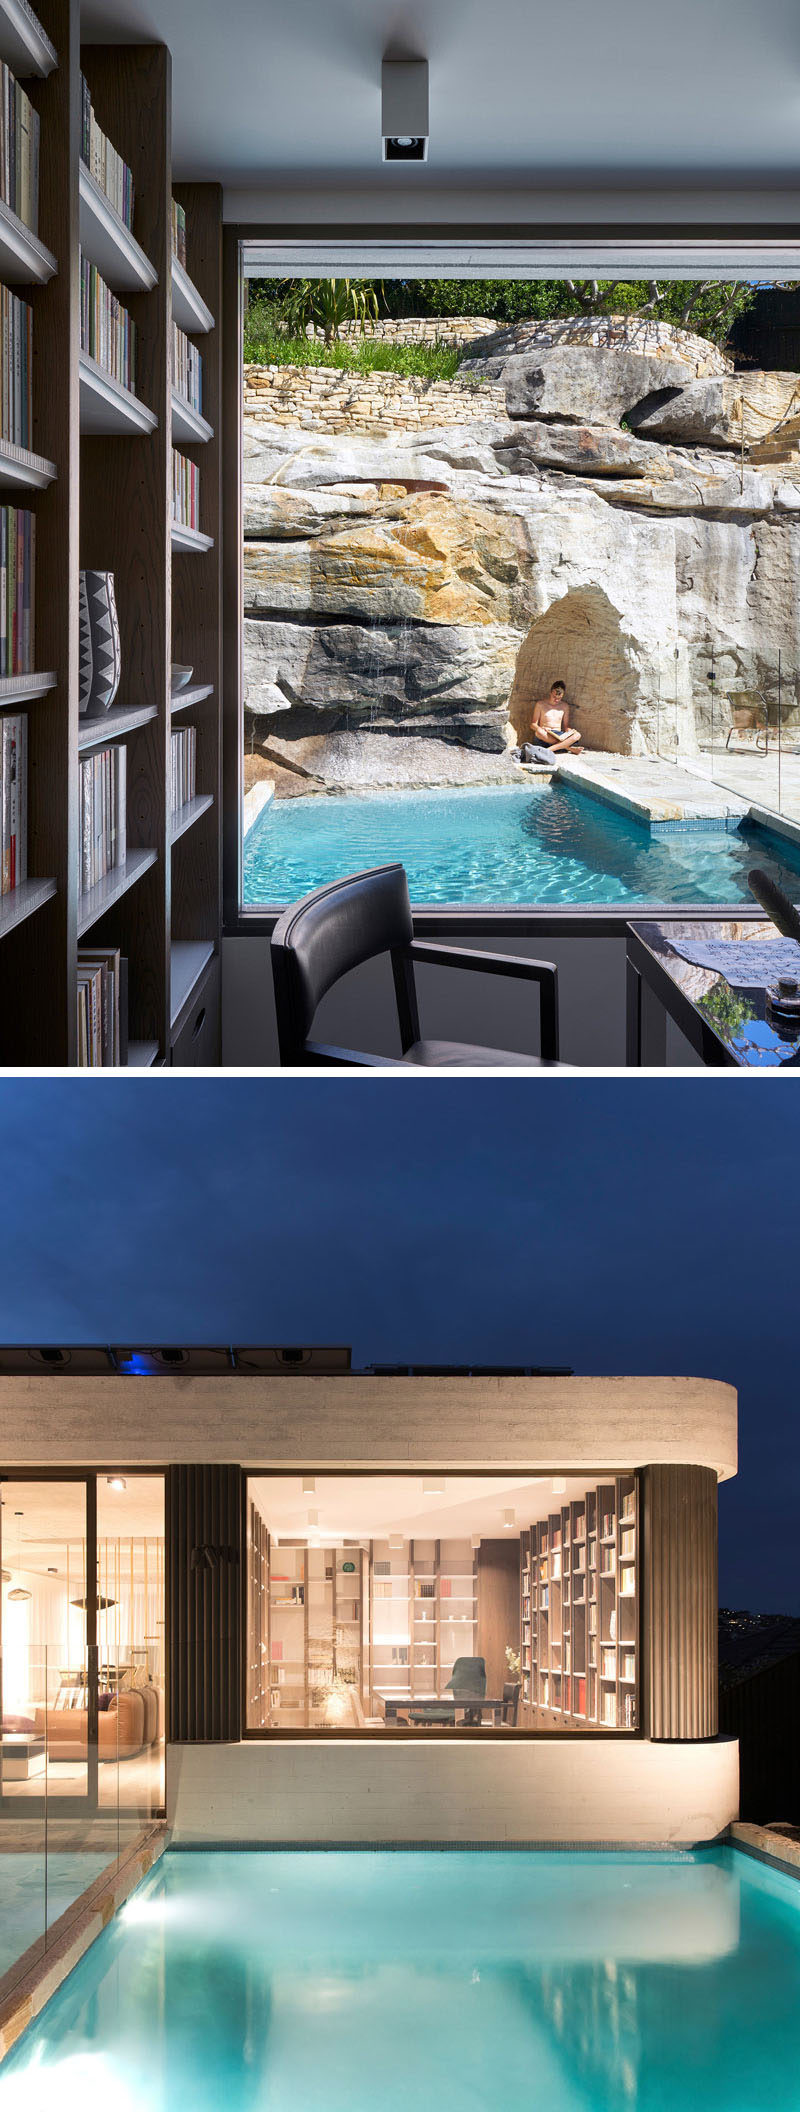 This study has a view of the ancient rock shelves and ledges that emerged in this steep escarpment, as well as the pool. At night, there's a clear view of the study from the outdoor areas. #Study #SwimingPool